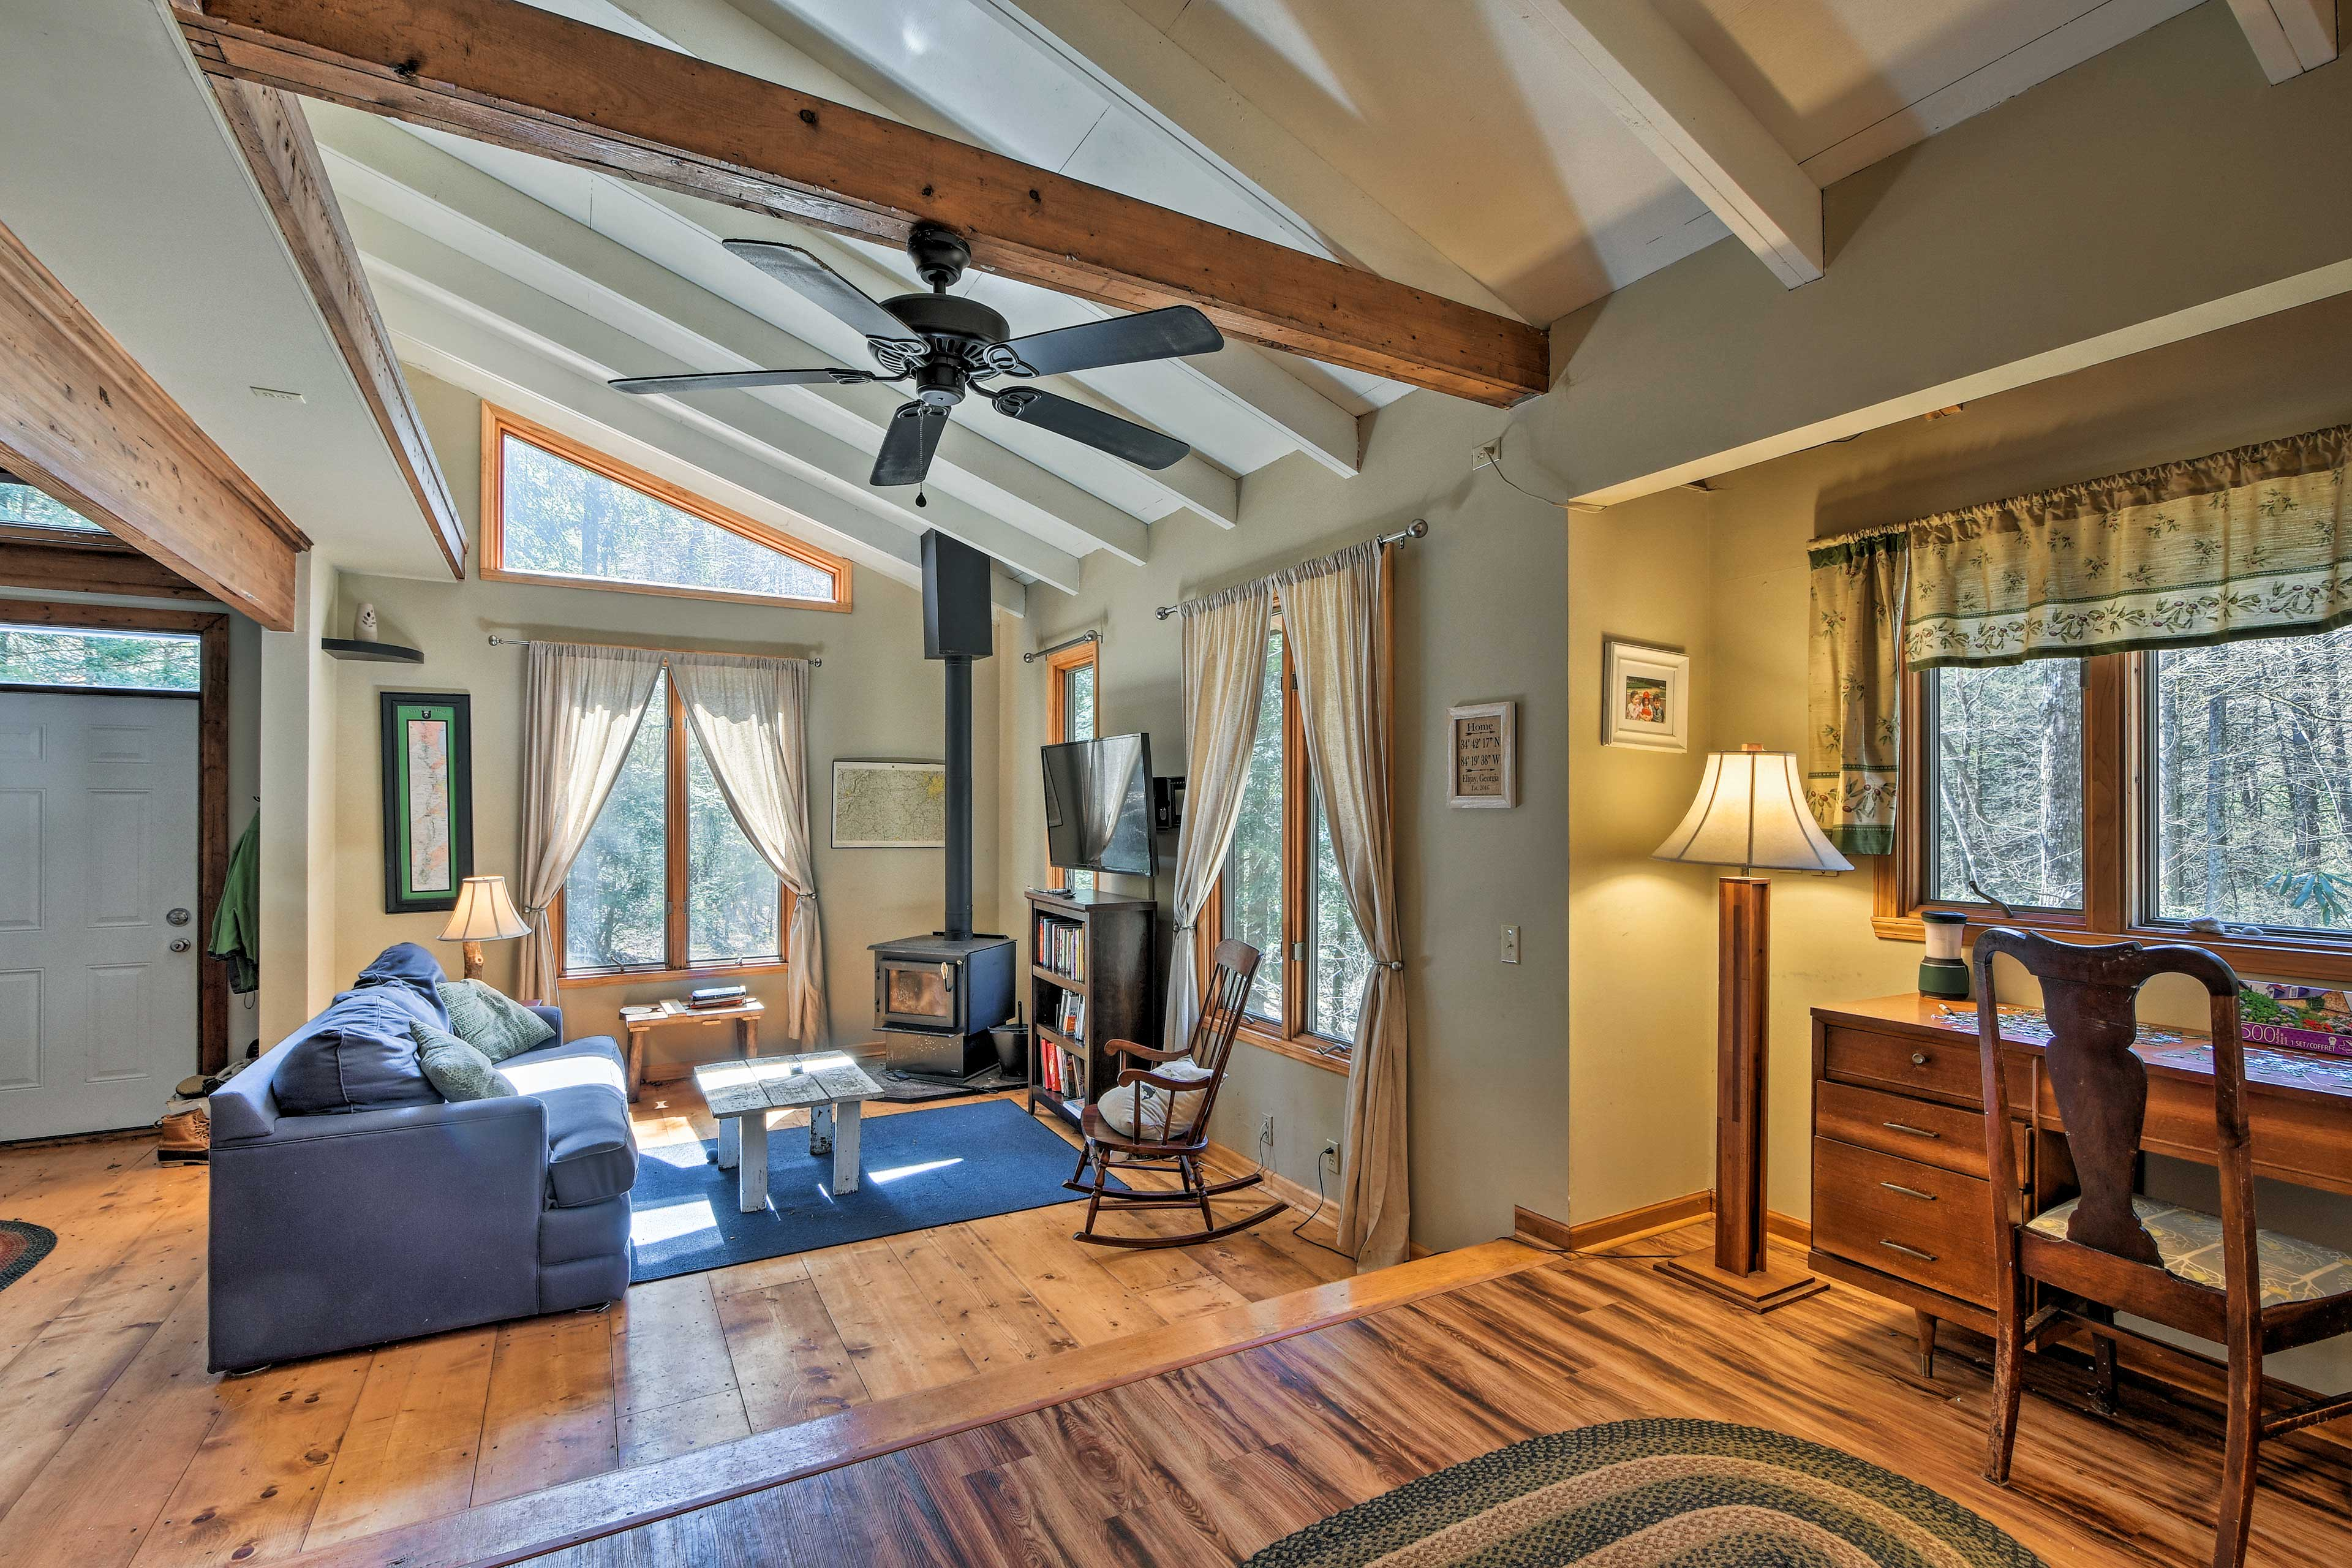 The living area features a flat-screen TV and wood-burning stove.